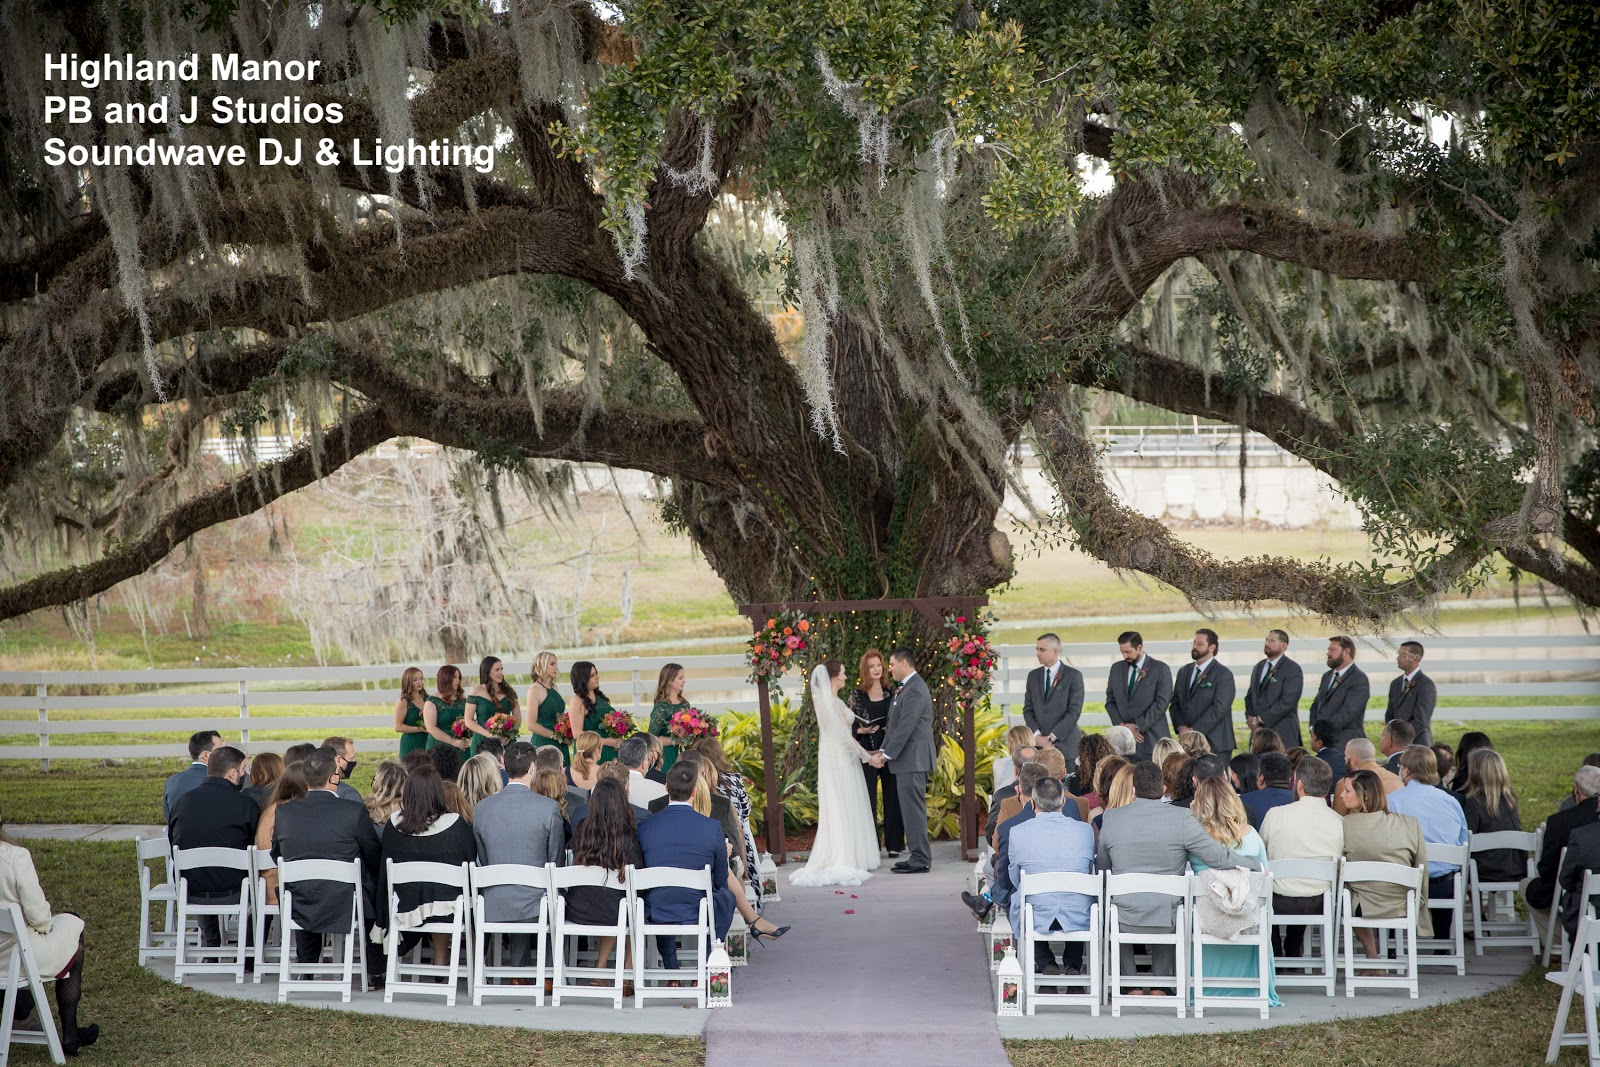 Highland-Manor-Wedding-under-Tree